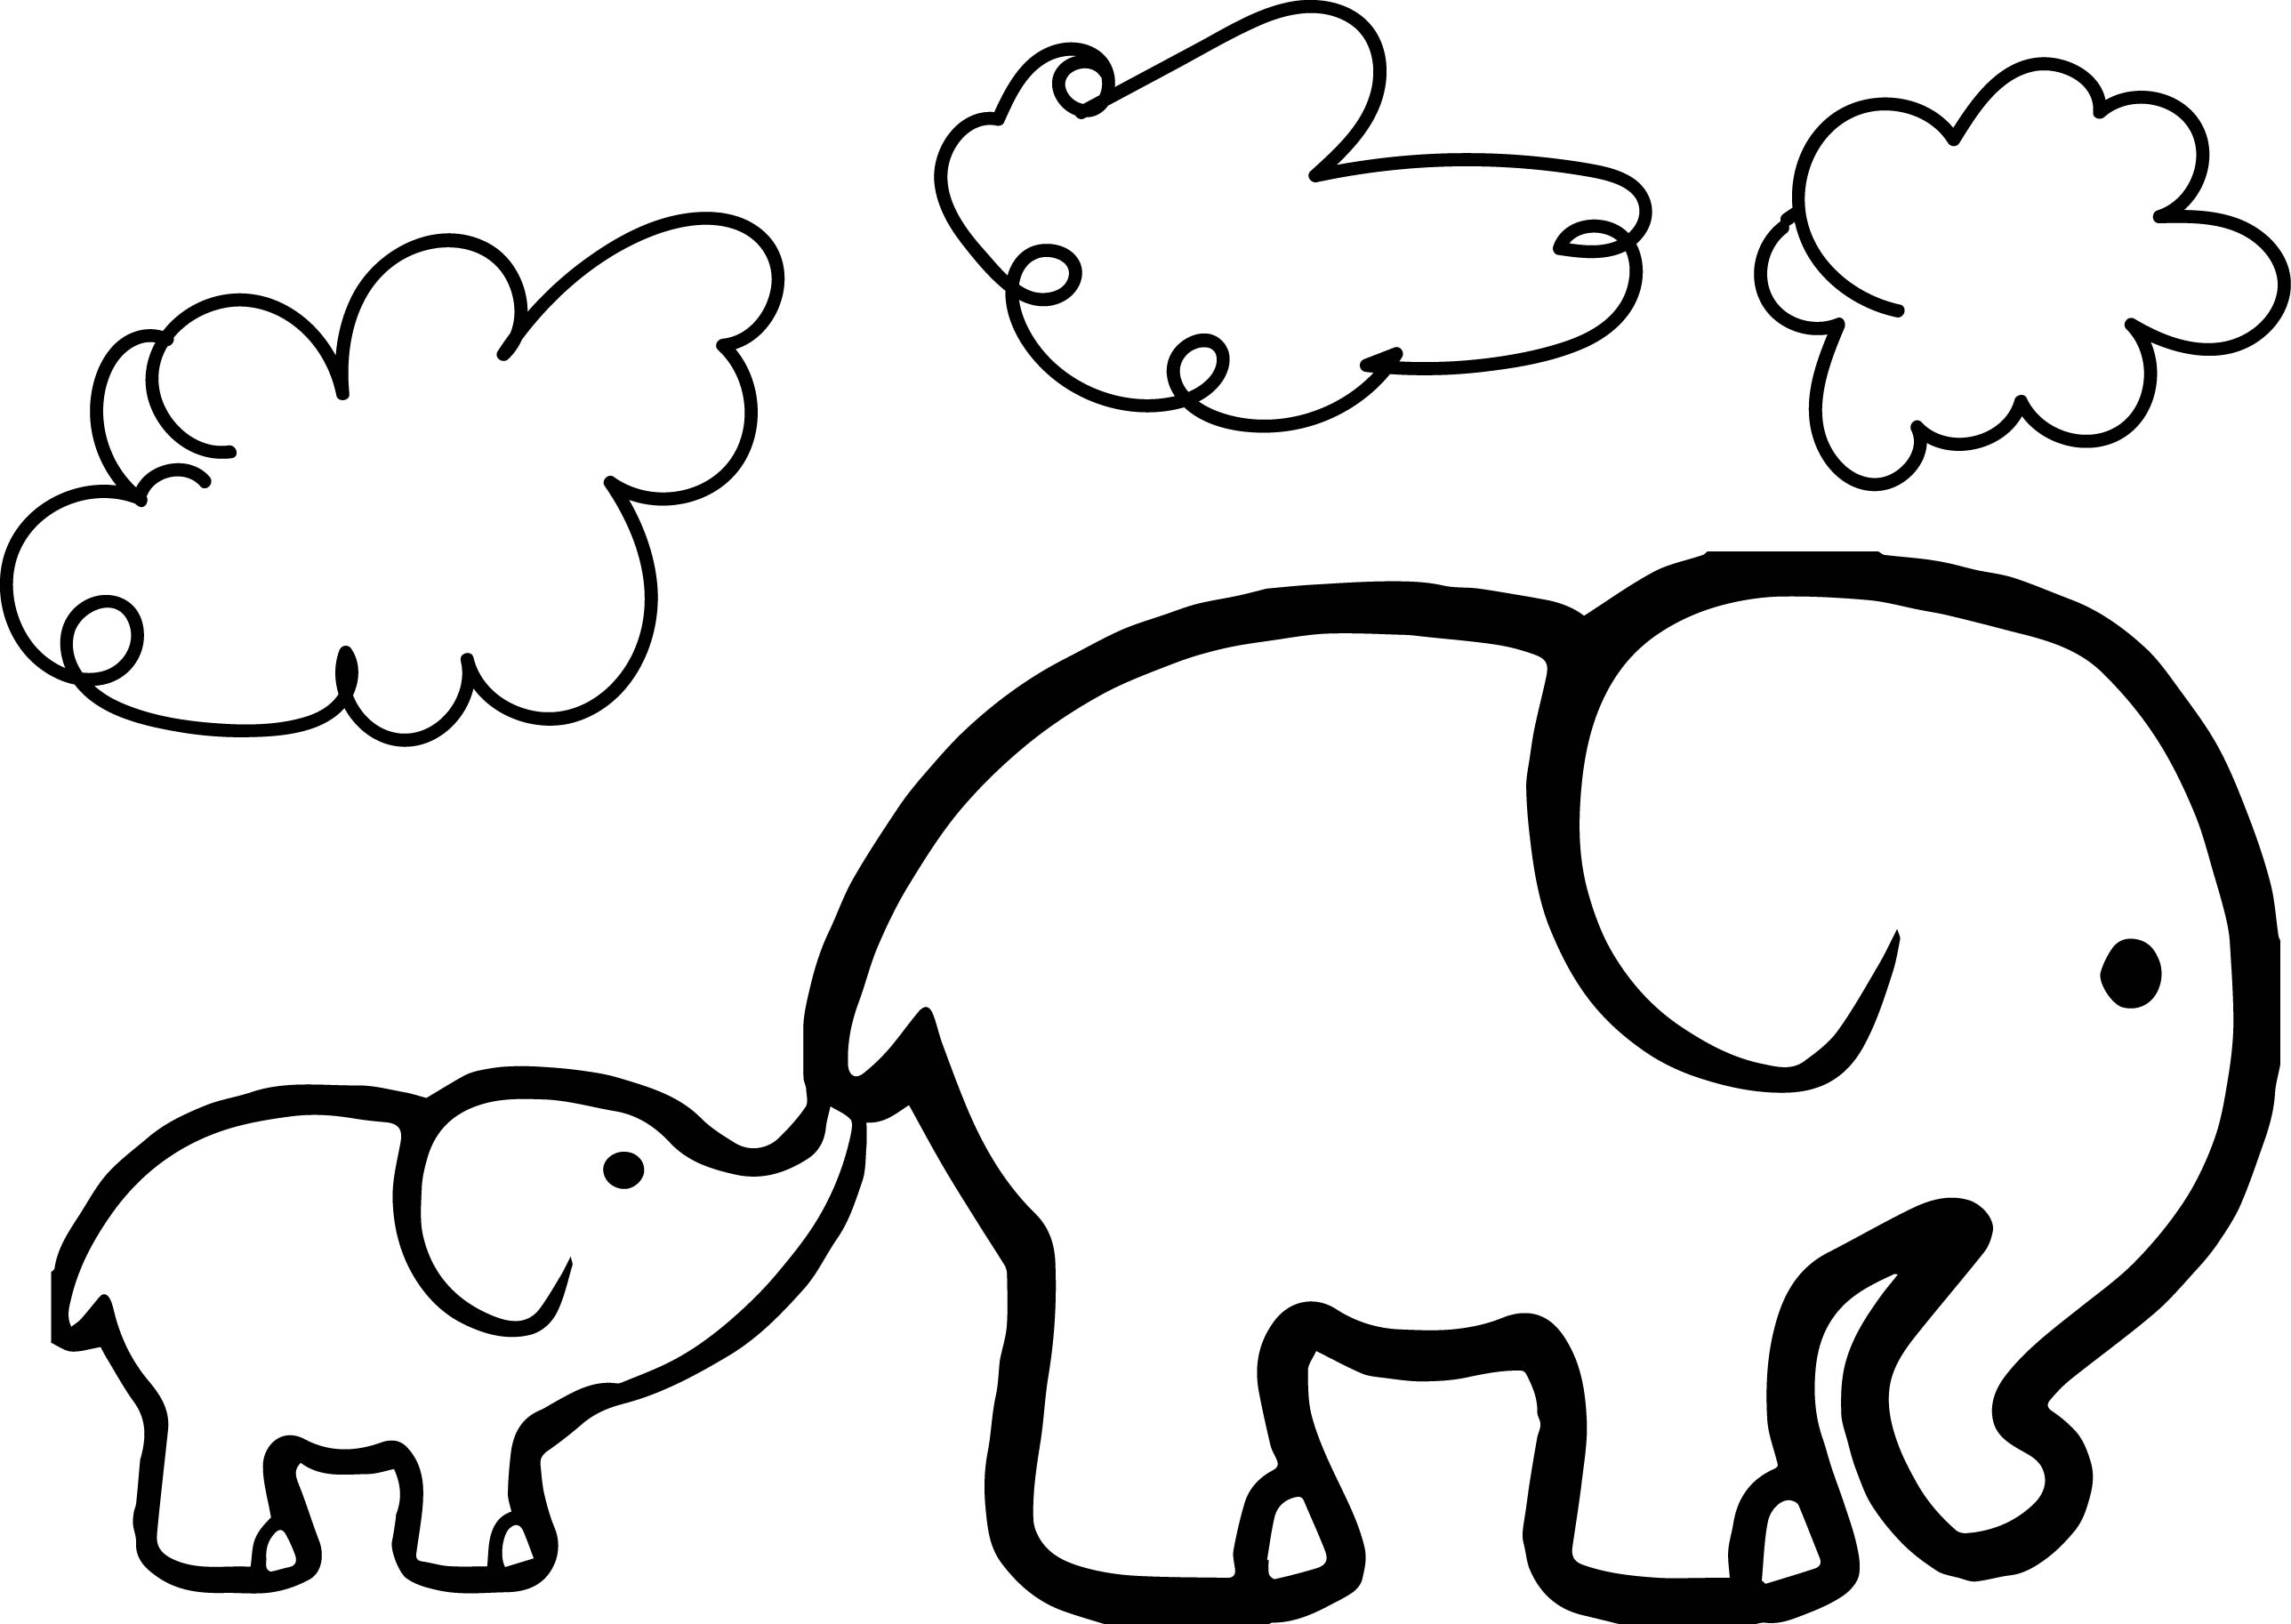 coloring pages elephants elephant coloring pages free download on clipartmag coloring pages elephants 1 1